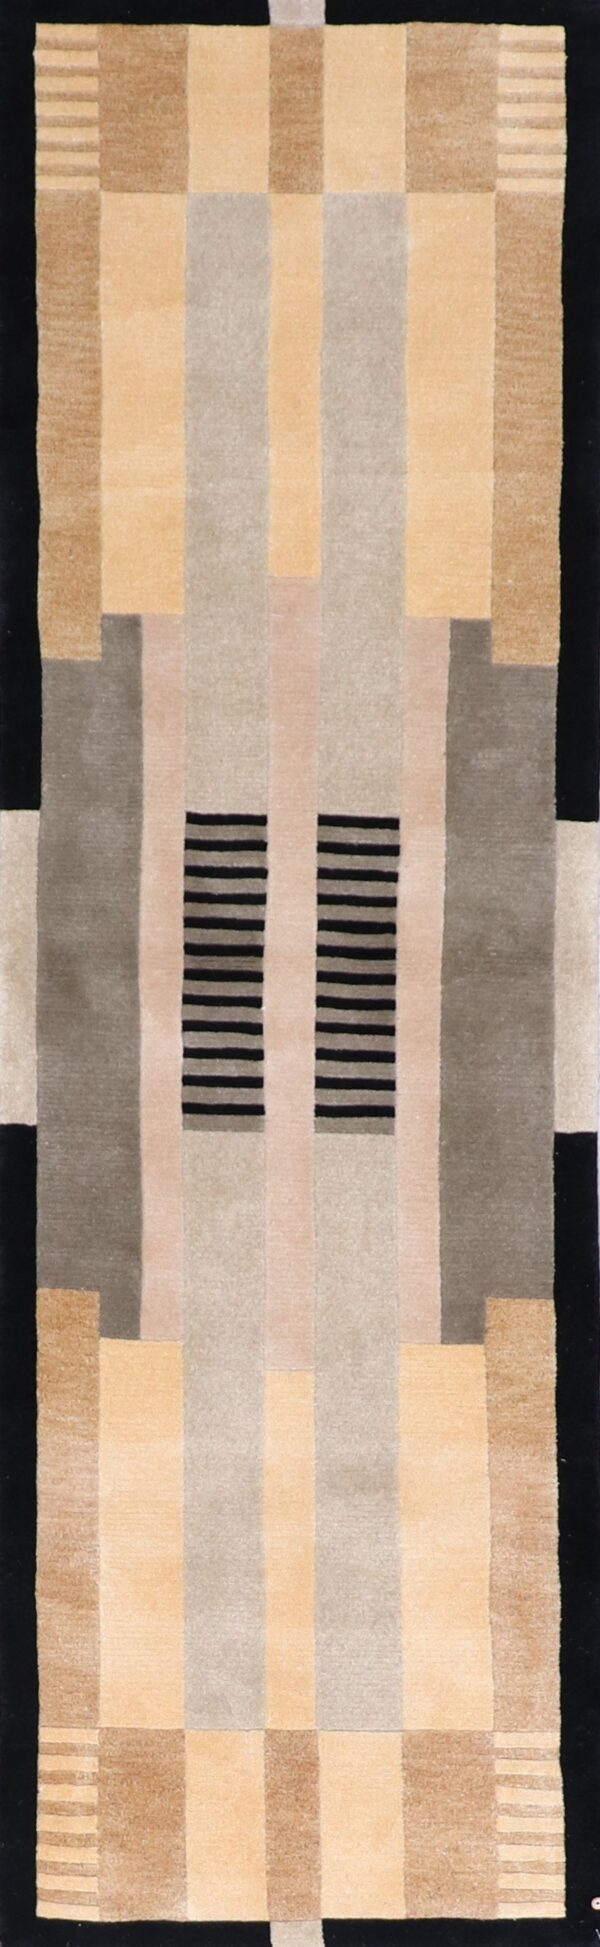 """2'4""""x8'1"""" Contemporary Tibetan Wool Hand-Knotted Rug - Direct Rug Import 